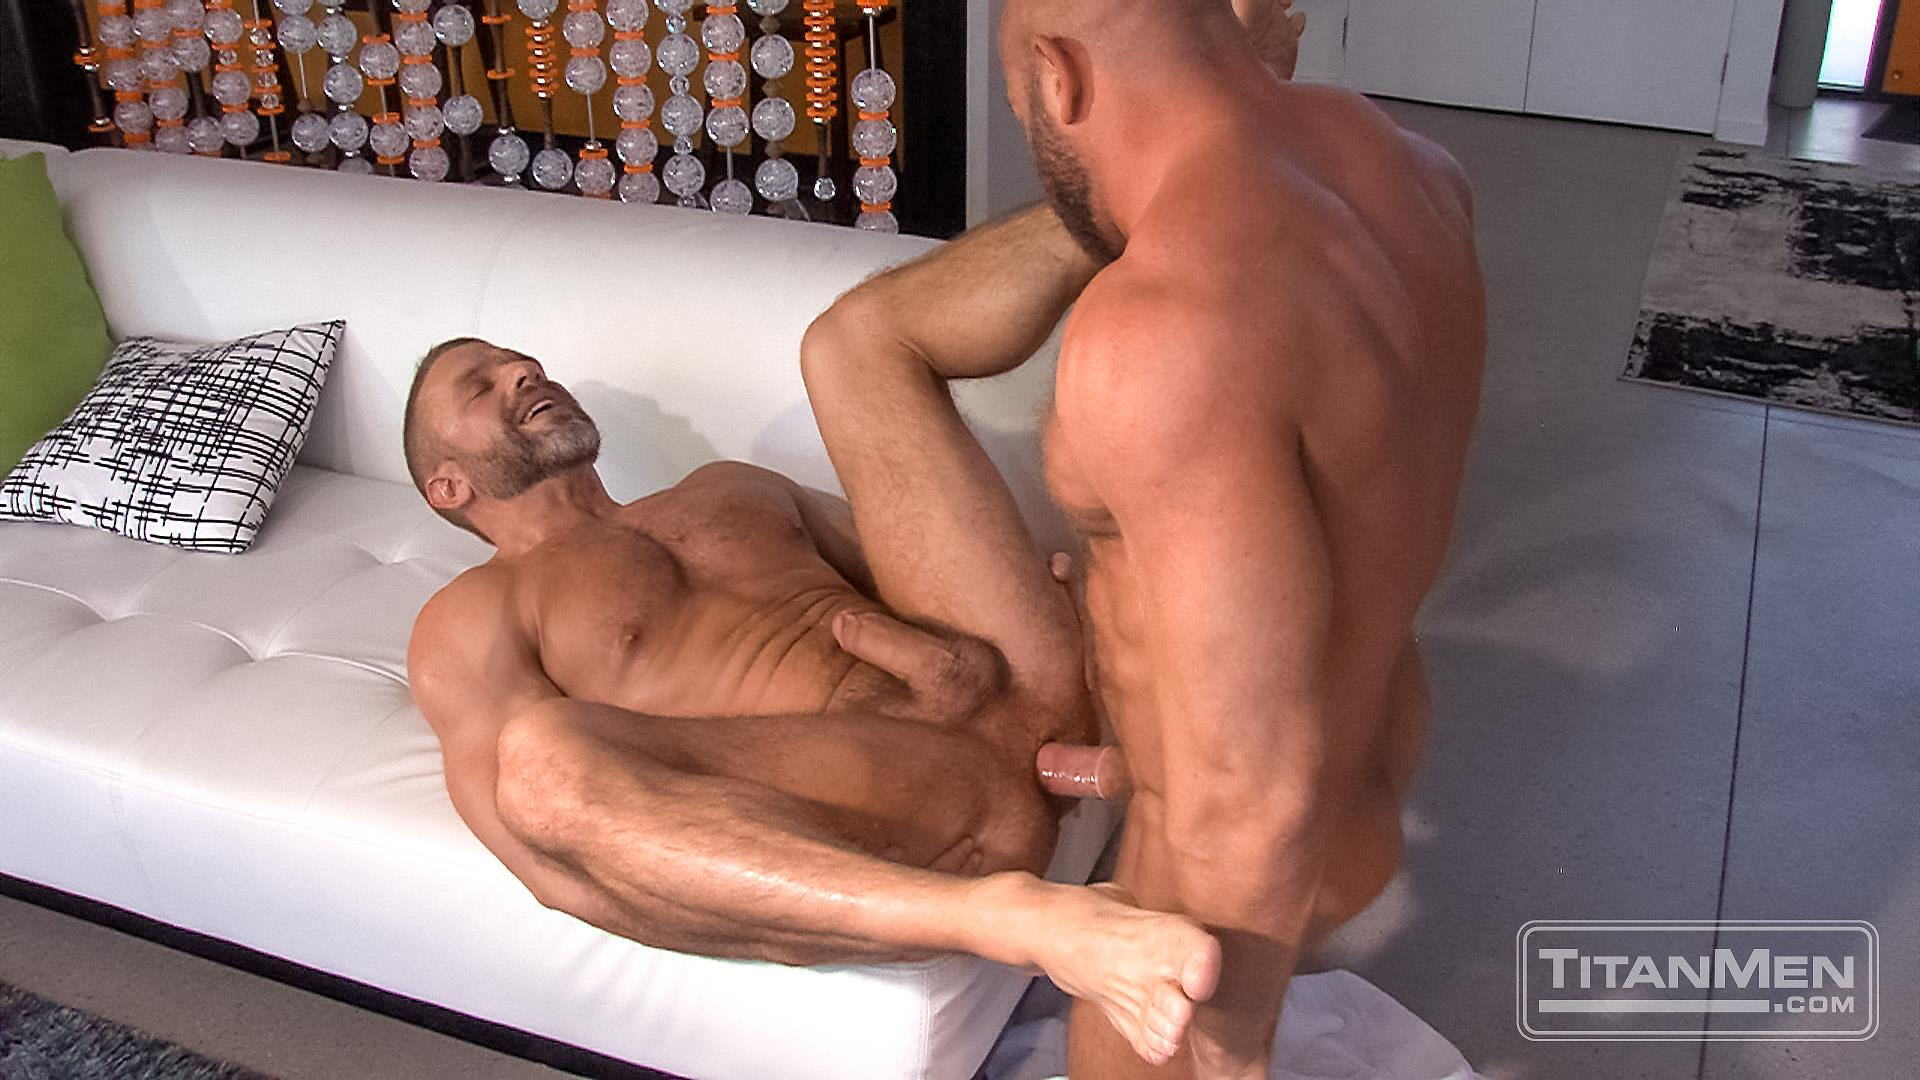 Titanmen Titan Hunter Marx and Dirk Caber Hairy Muscle Daddy Fuck Amateur Gay Porn 41